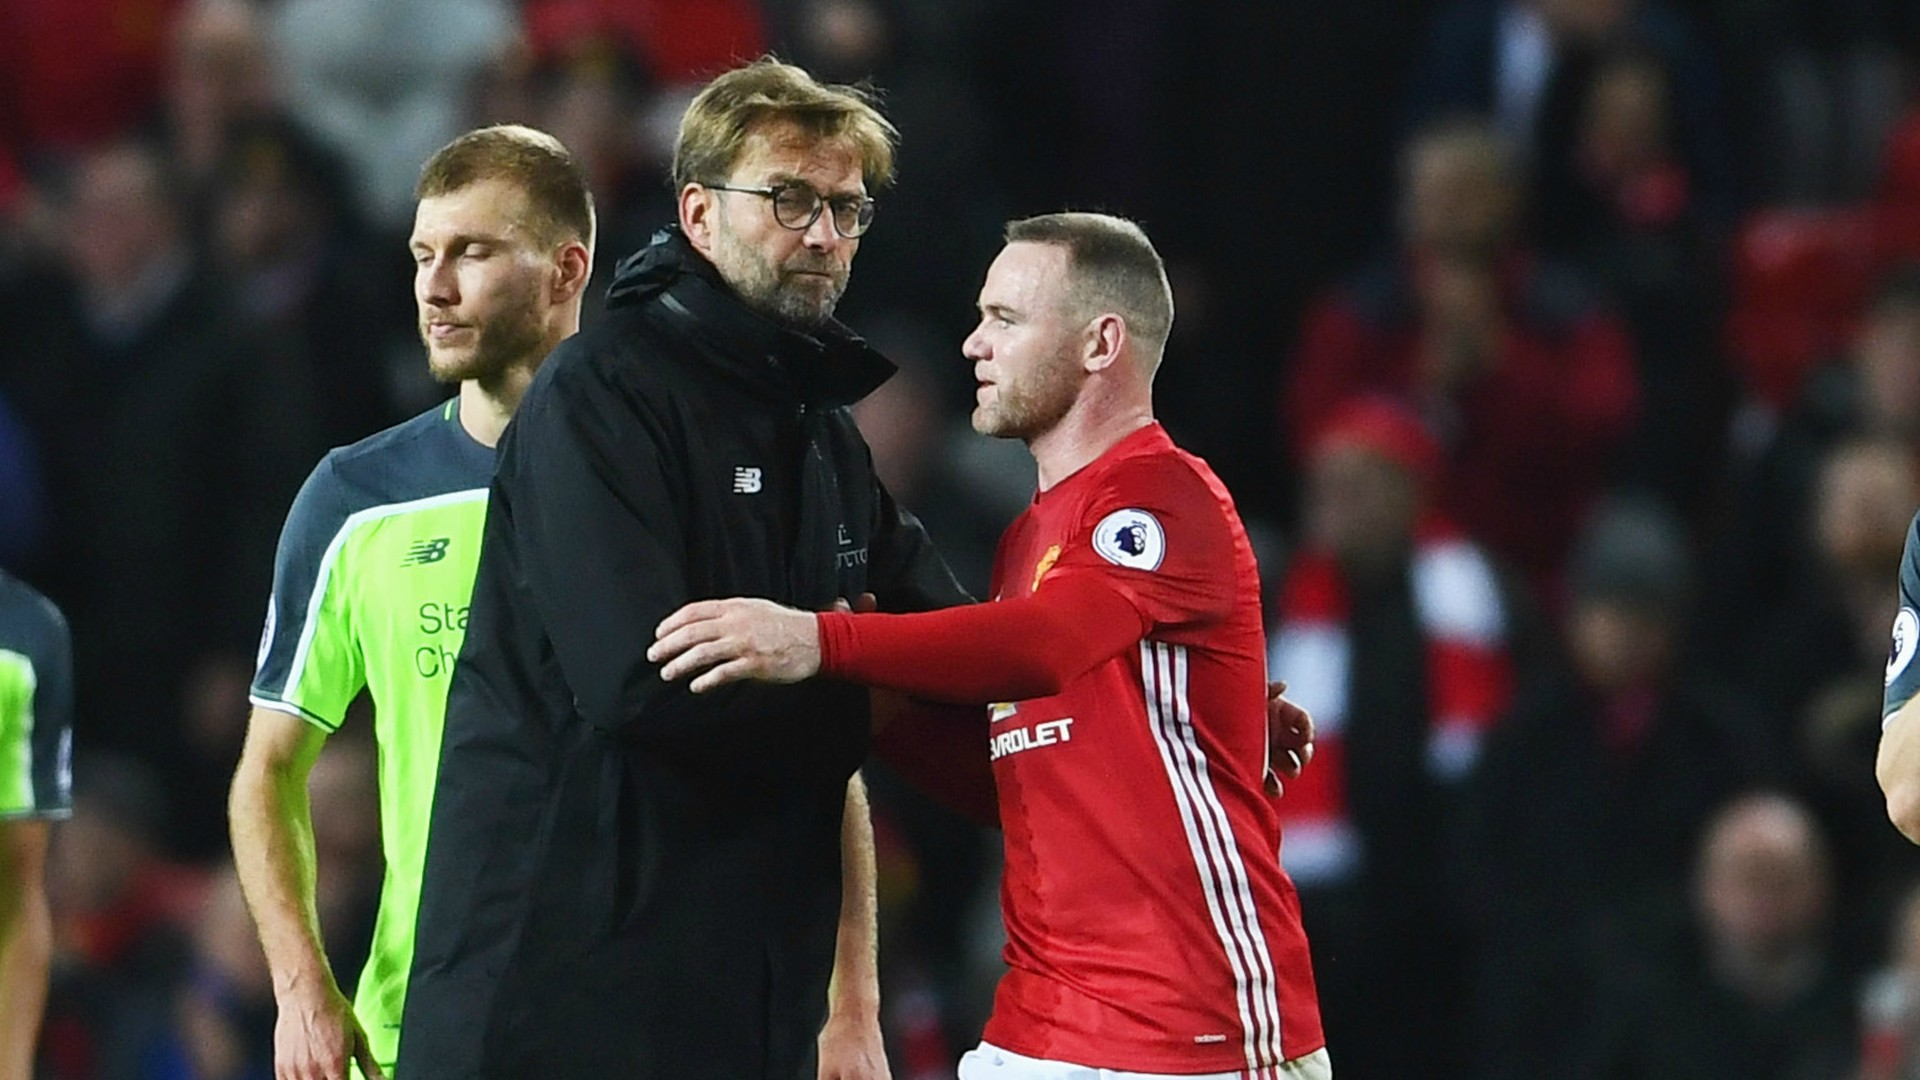 Rooney: Only bad thing about Klopp is coaching Liverpool!